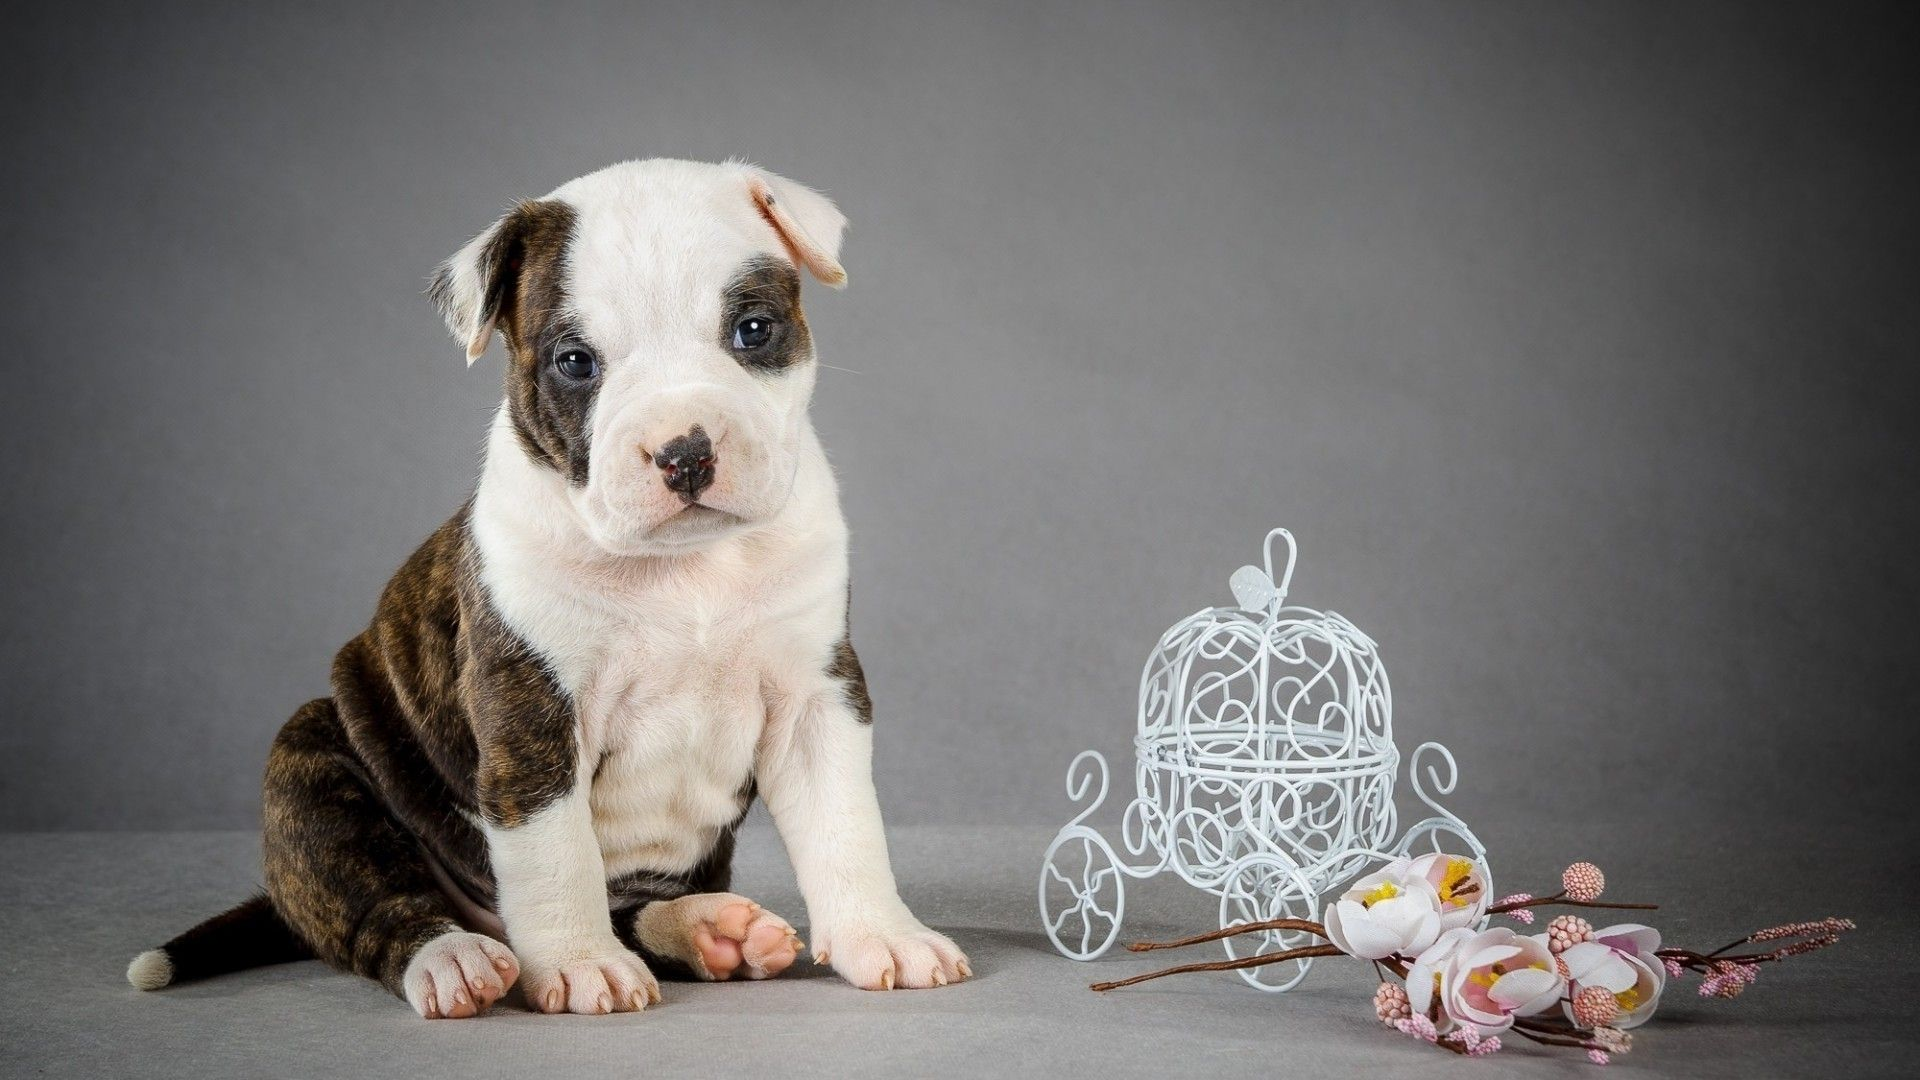 Pitbull Wallpapers The Most Beautiful Pitbull Pupy Best Wallpaper Collection Dog Wallpaper Pitbull Wallpaper Pitbull Dog